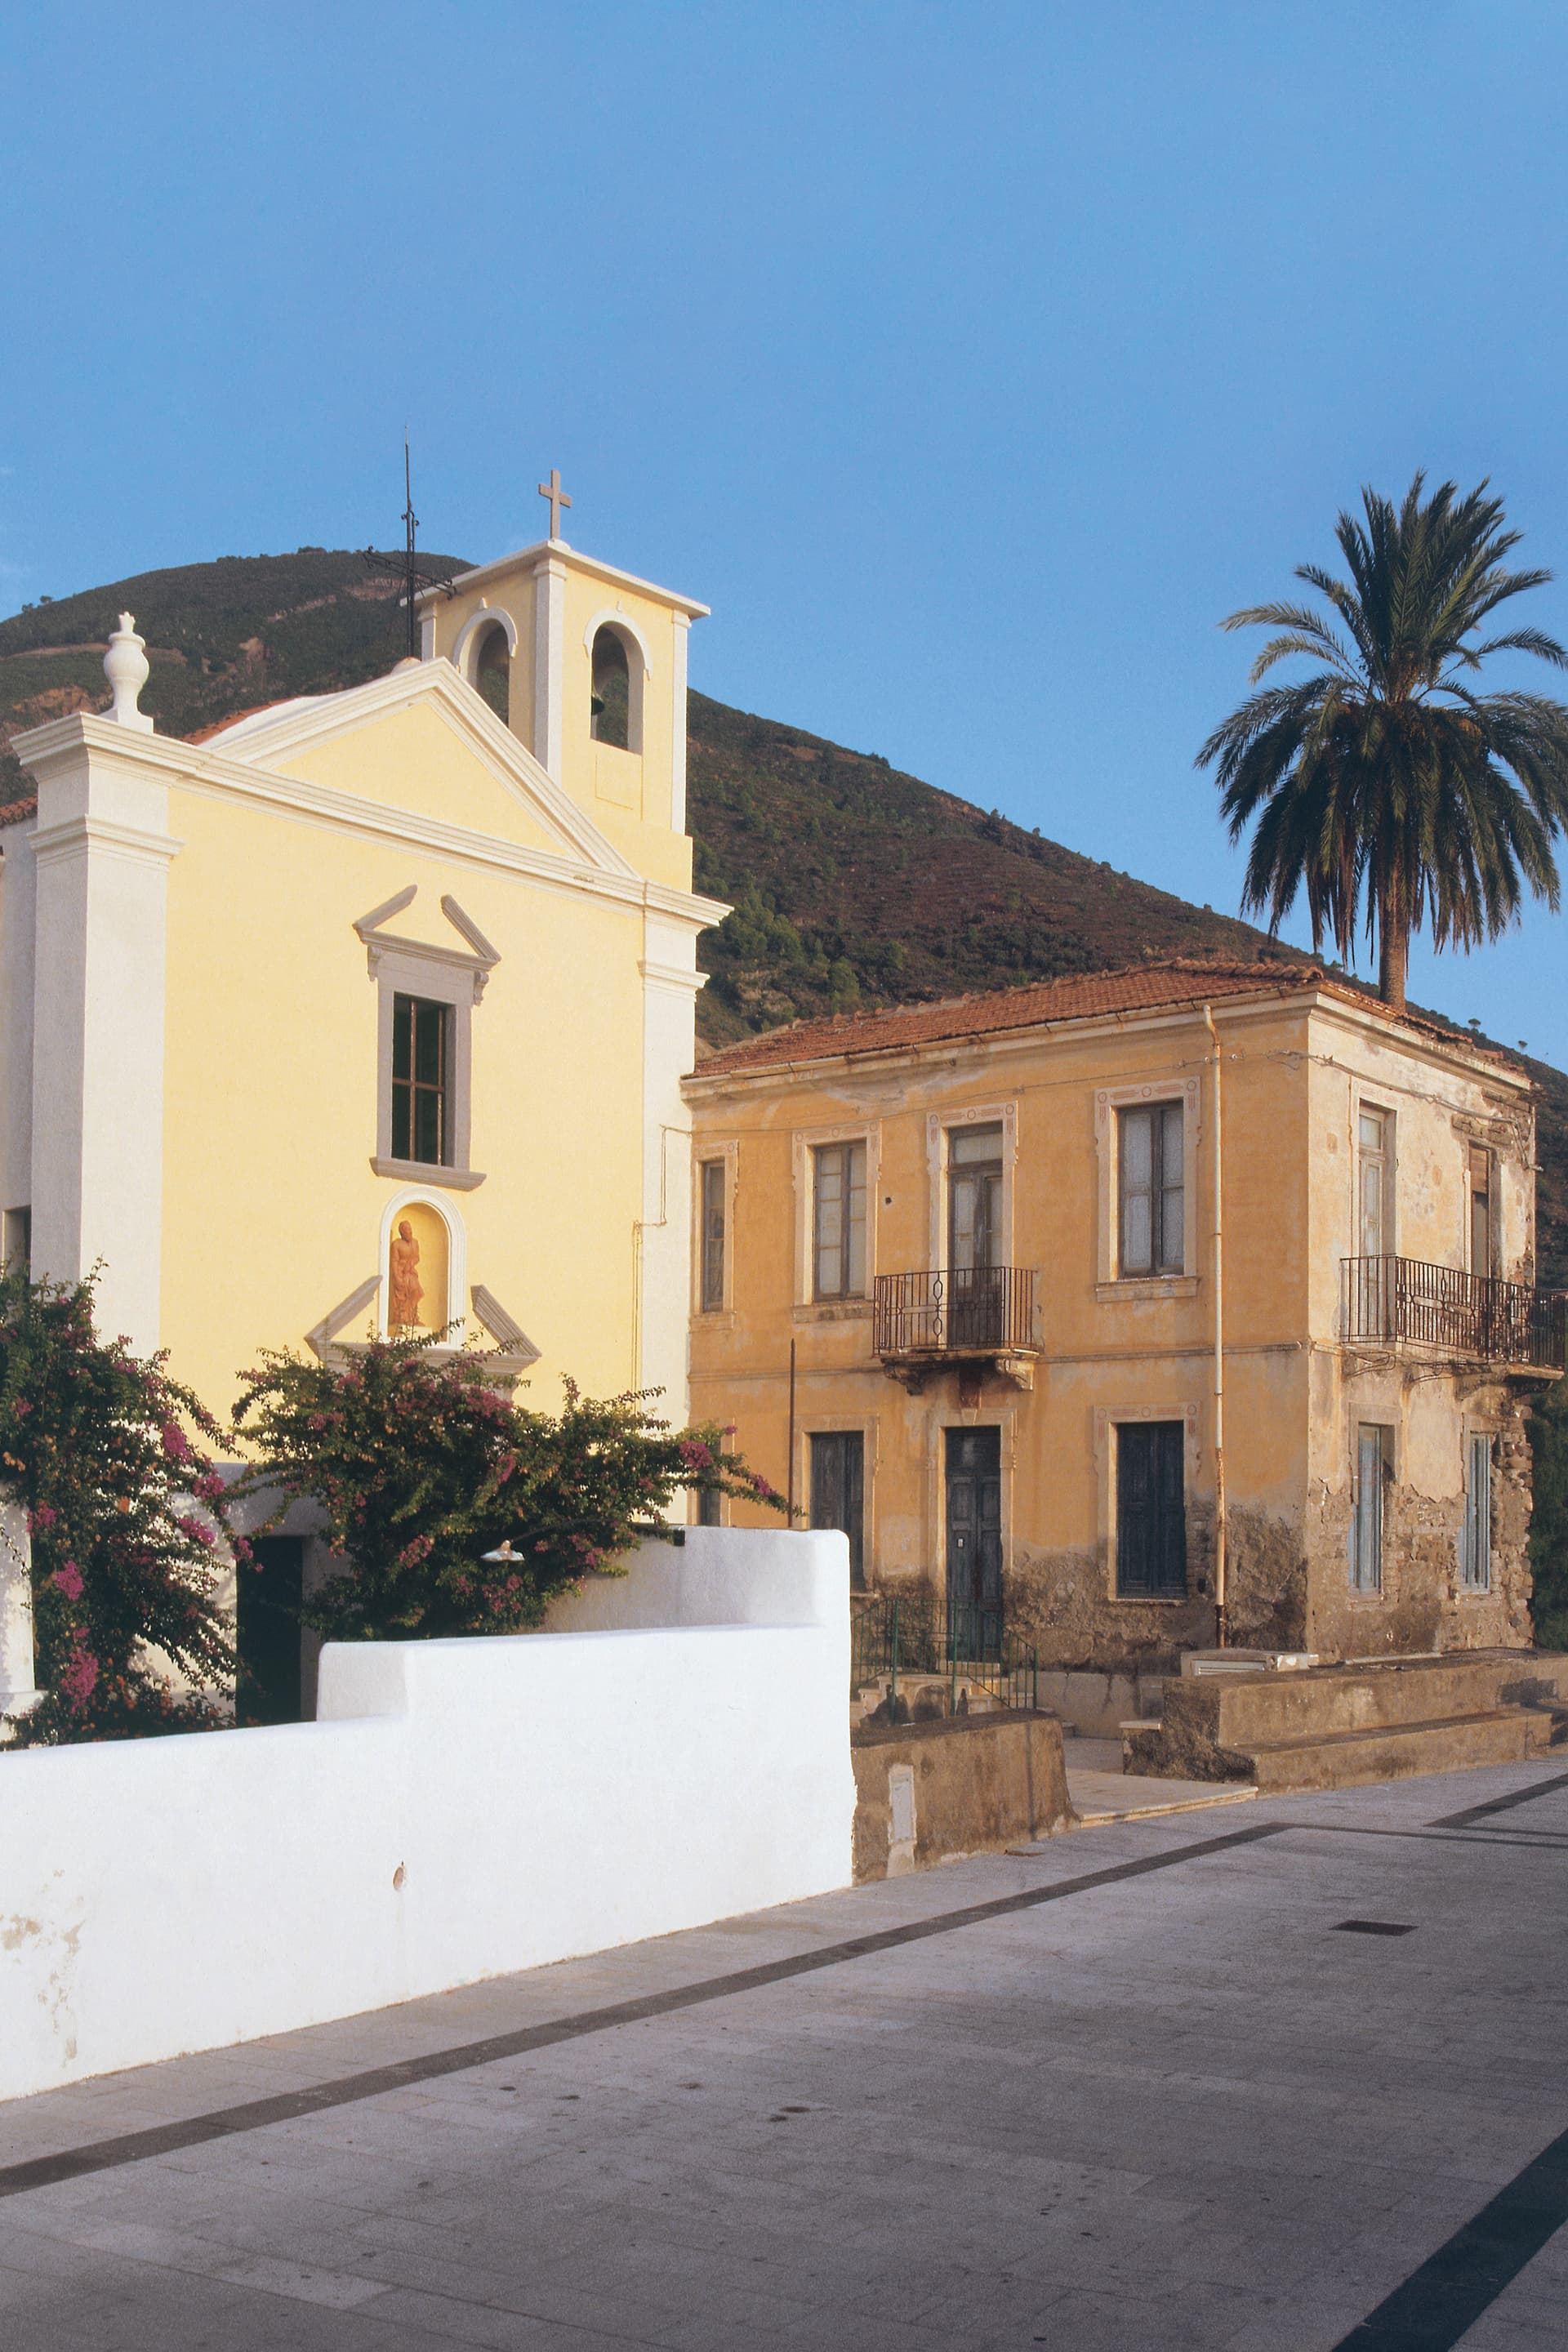 The small church of San Bartolo, protector of the Aeolians Islands, overlooking the sea in Lingua.